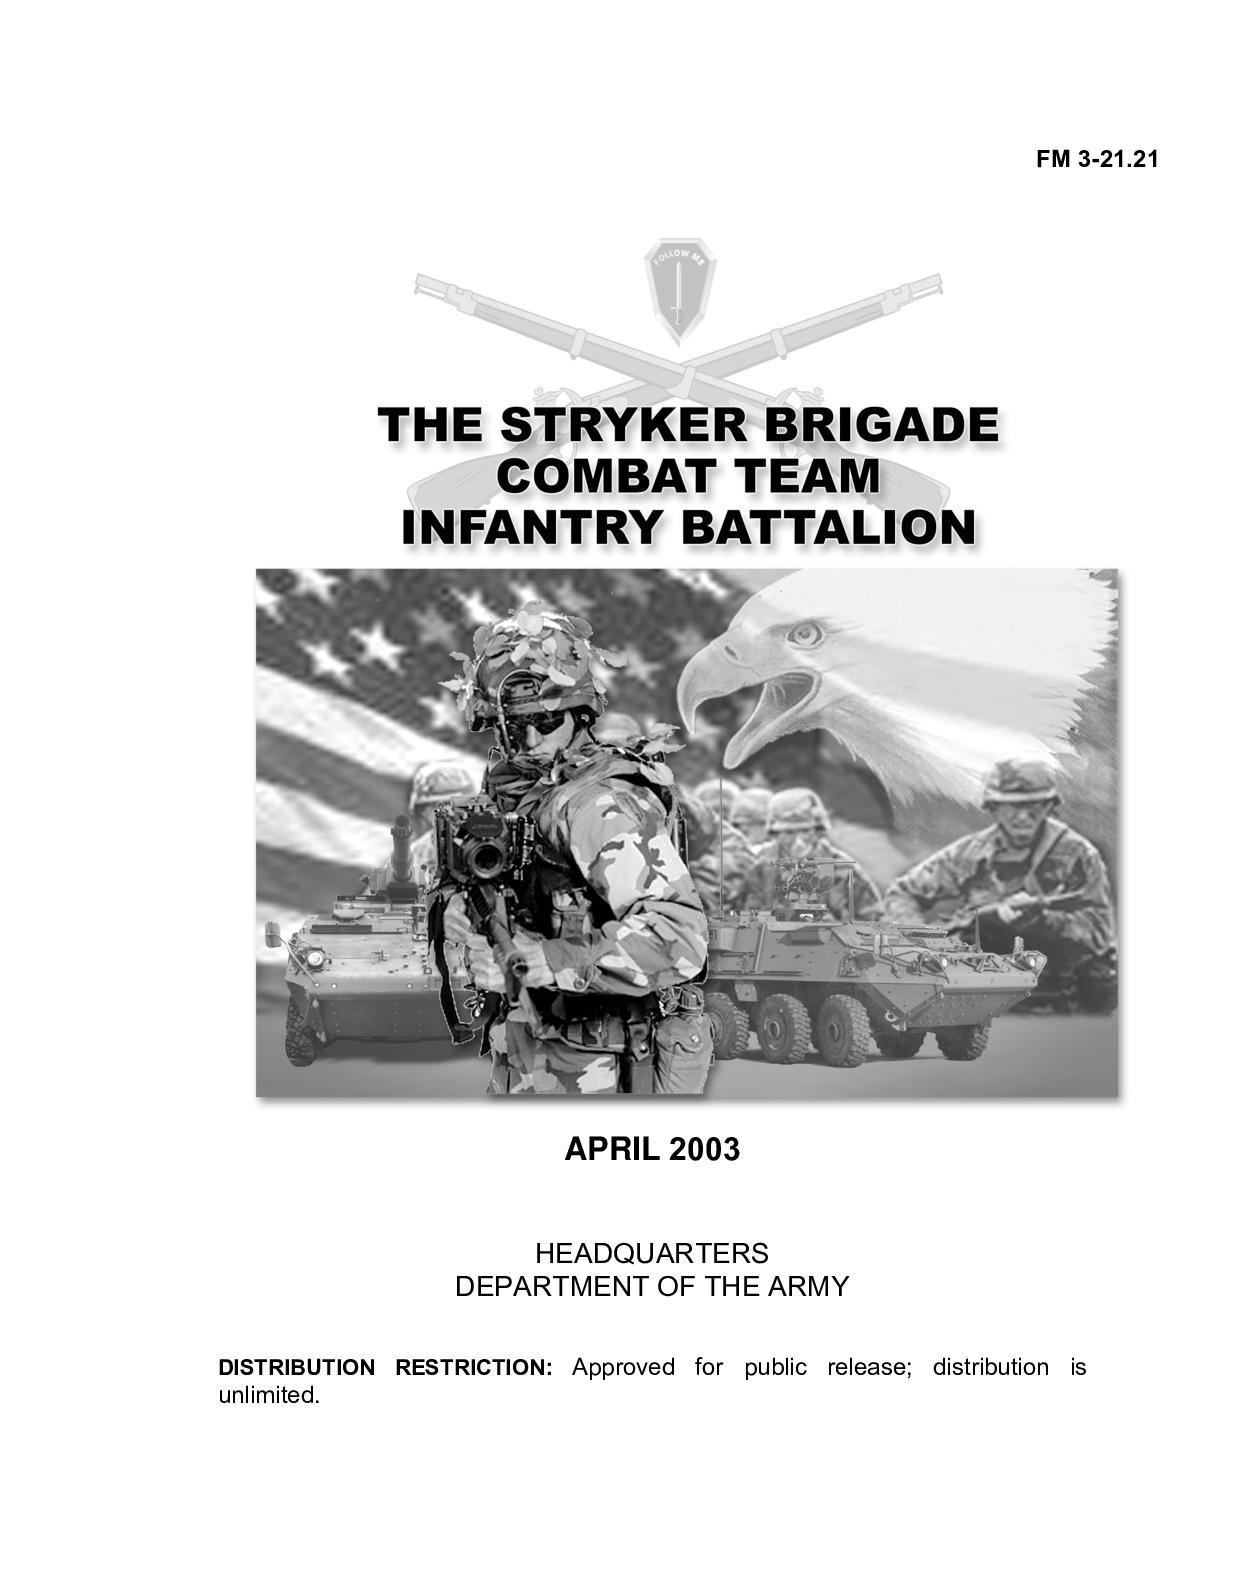 (e Book - English - Military) US Army - Field Manual FM 3 21 21 - THE  STRYKER BRIGADE COMBAT TEAM INFANTRY BATTALION Apr2003